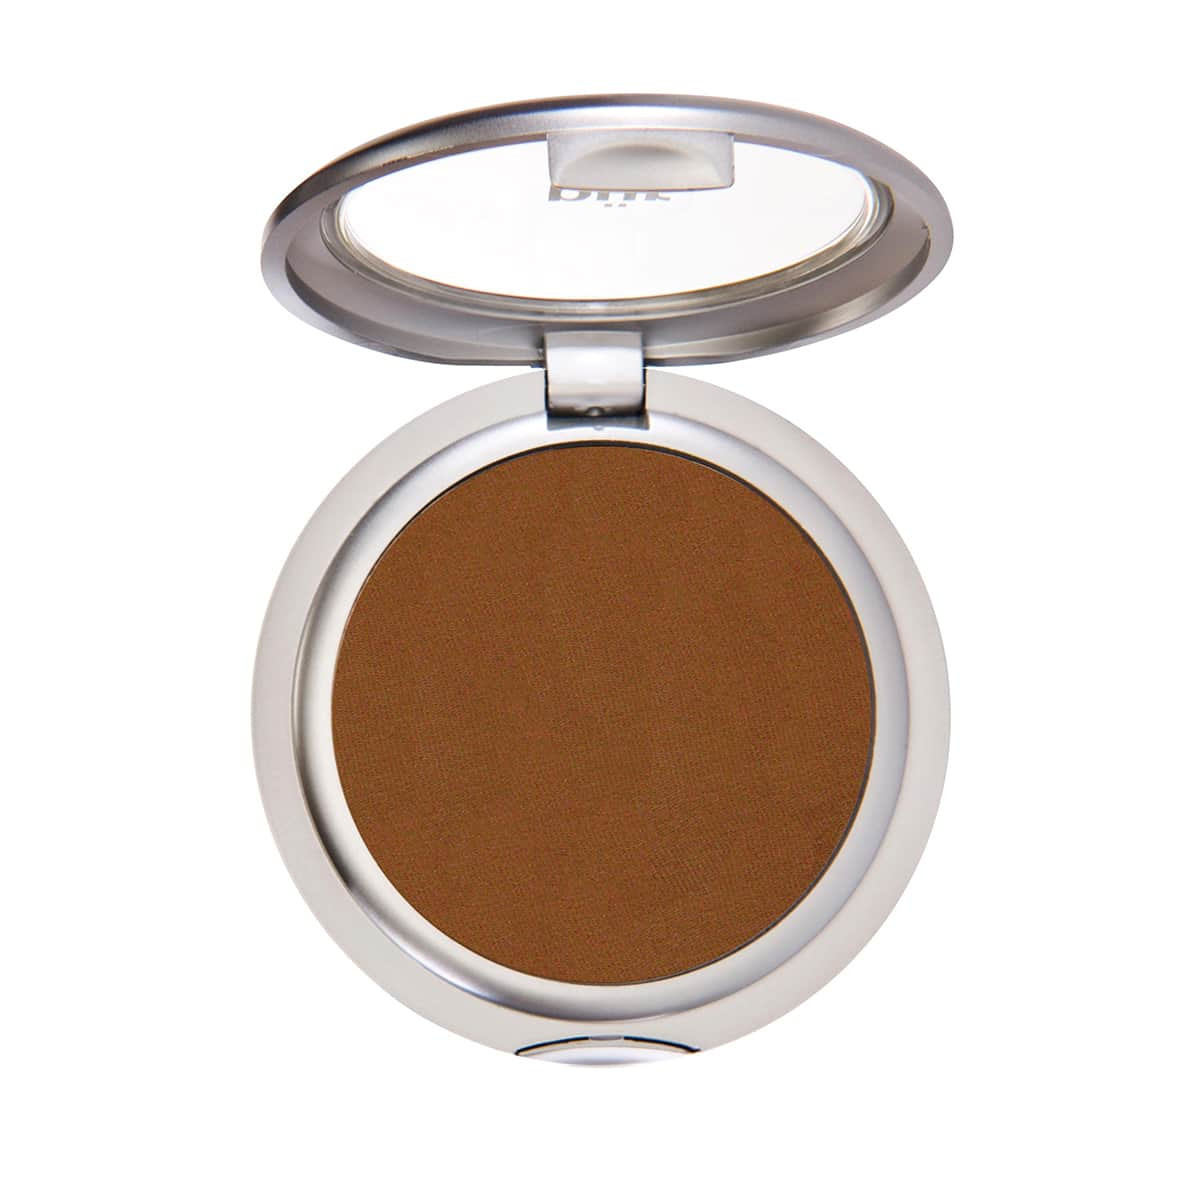 4-in-1 Pressed Mineral Makeup Foundation Dark